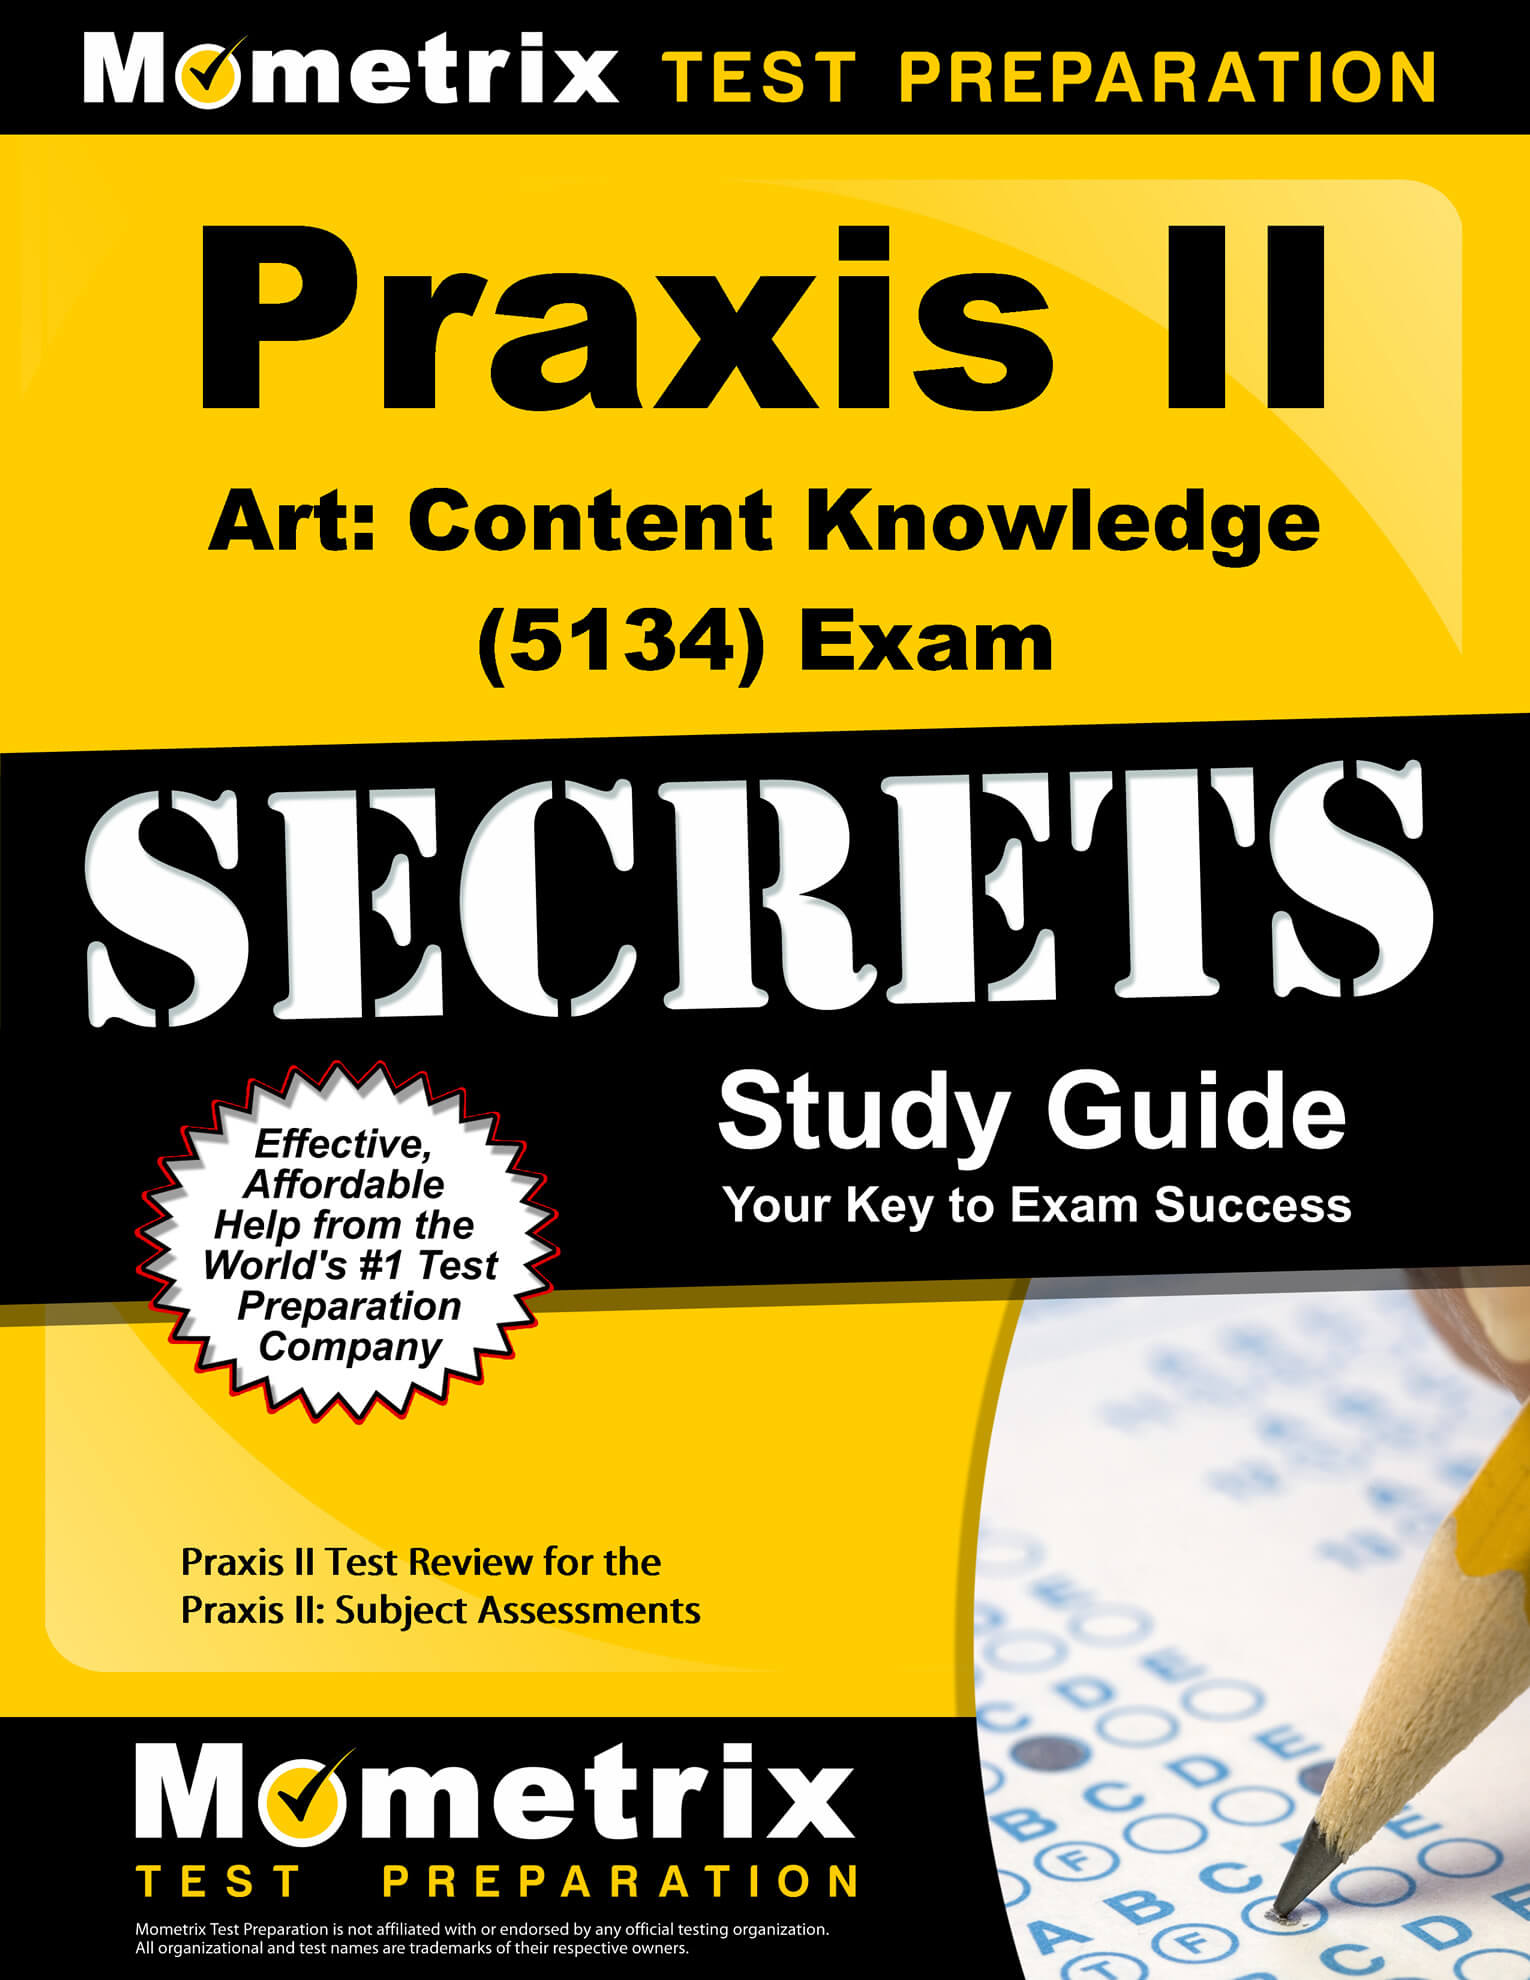 Praxis II Art: Content Knowledge Study Guide